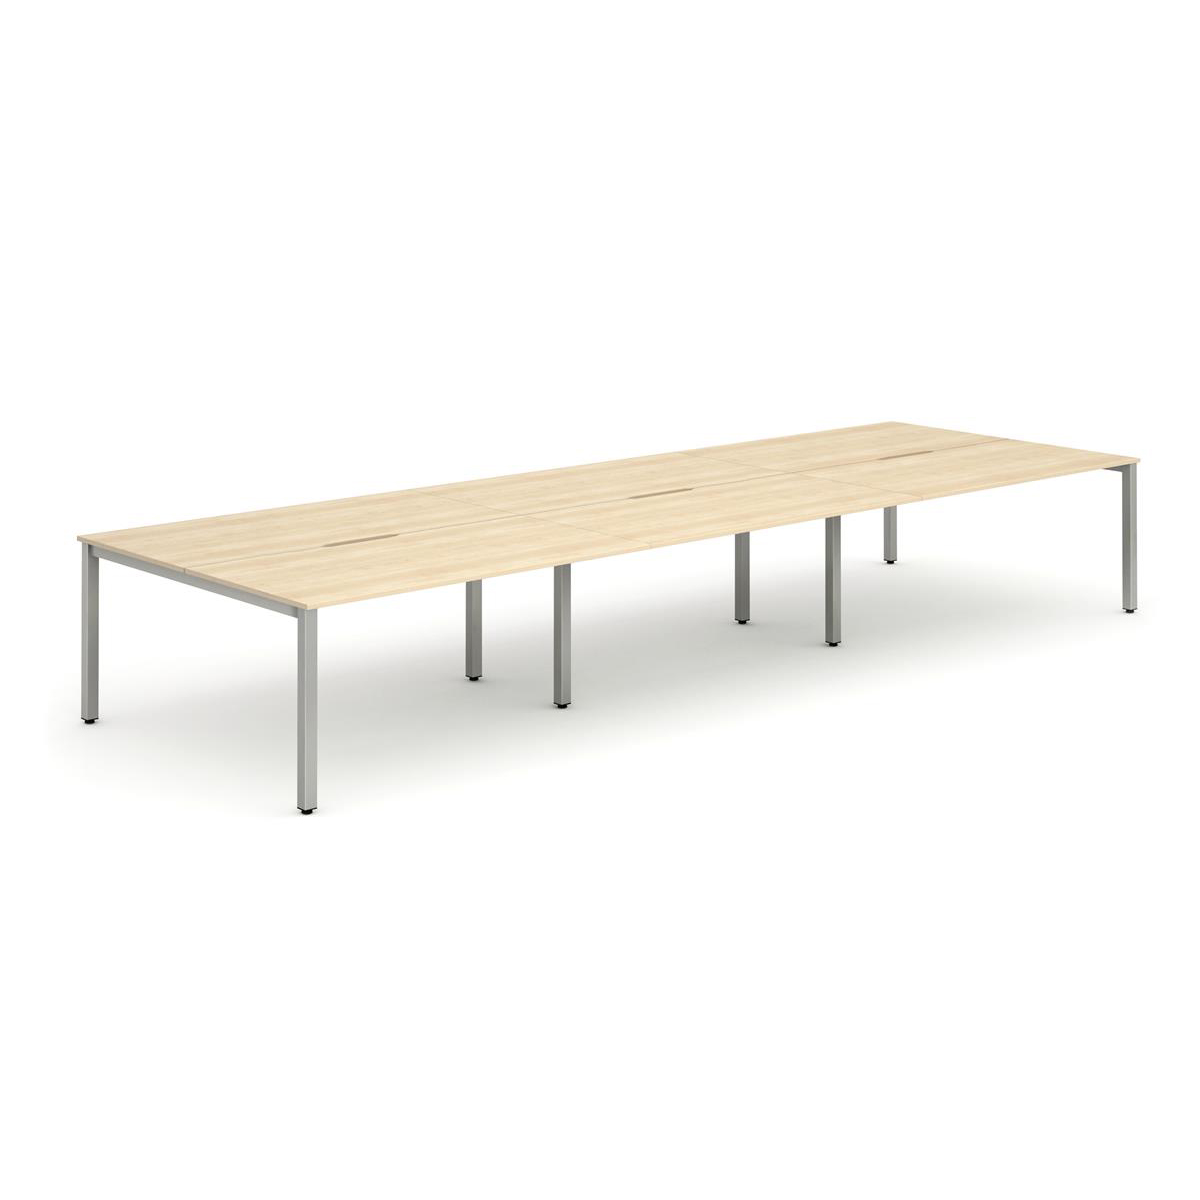 Trexus Bench Desk 6 Person Back to Back Configuration Silver Leg 3200x1600mm Maple Ref BE286